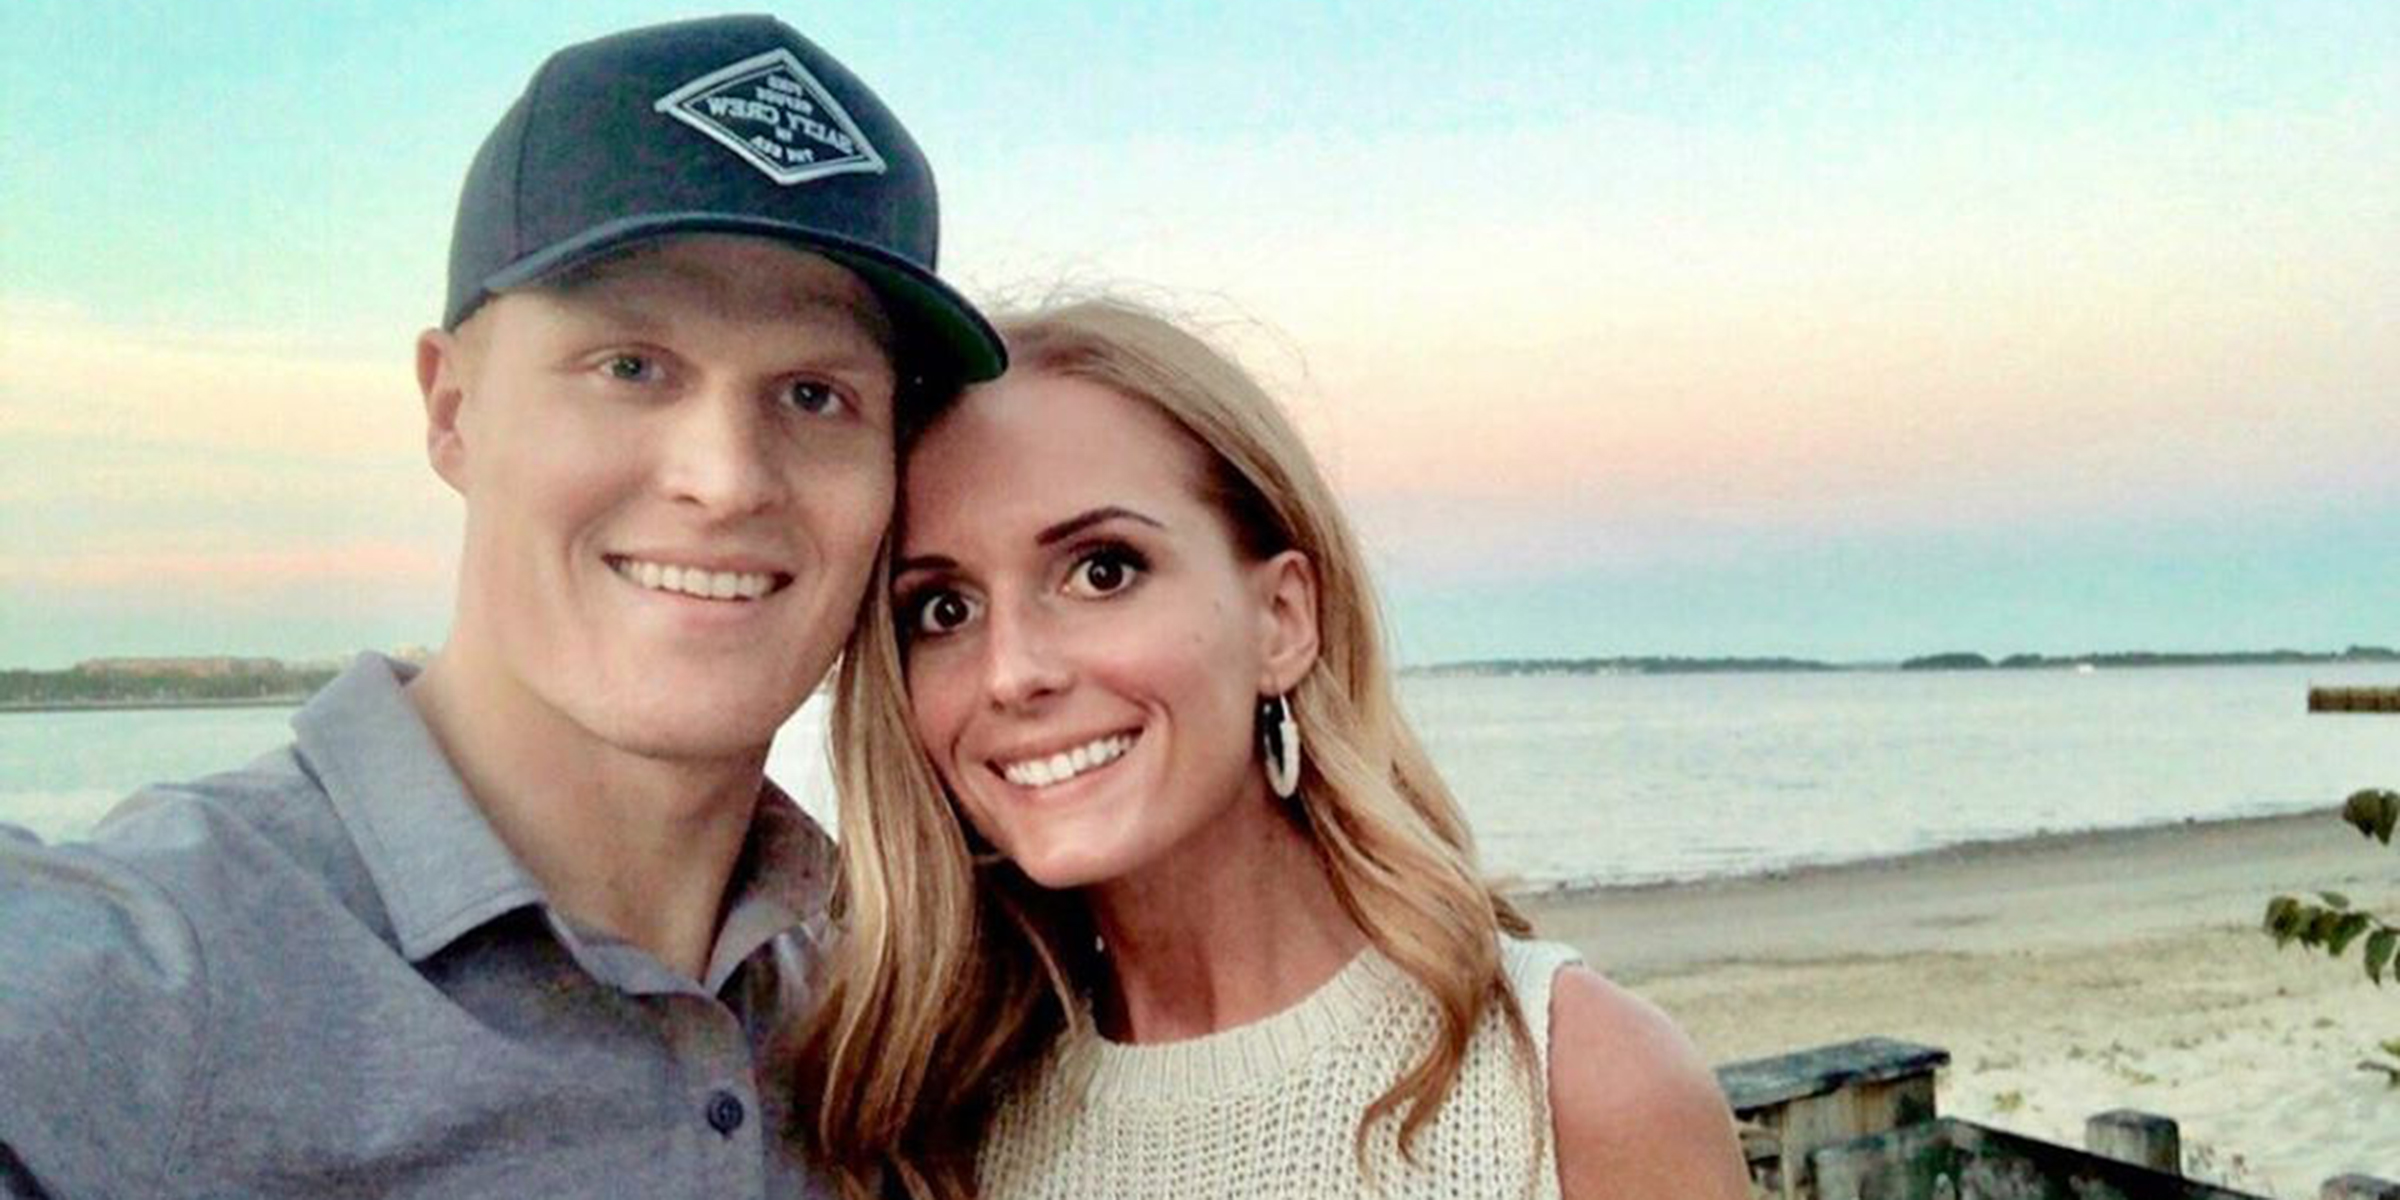 'We need a miracle': Wife of 25-year-old NHL player in a coma shares emotional plea